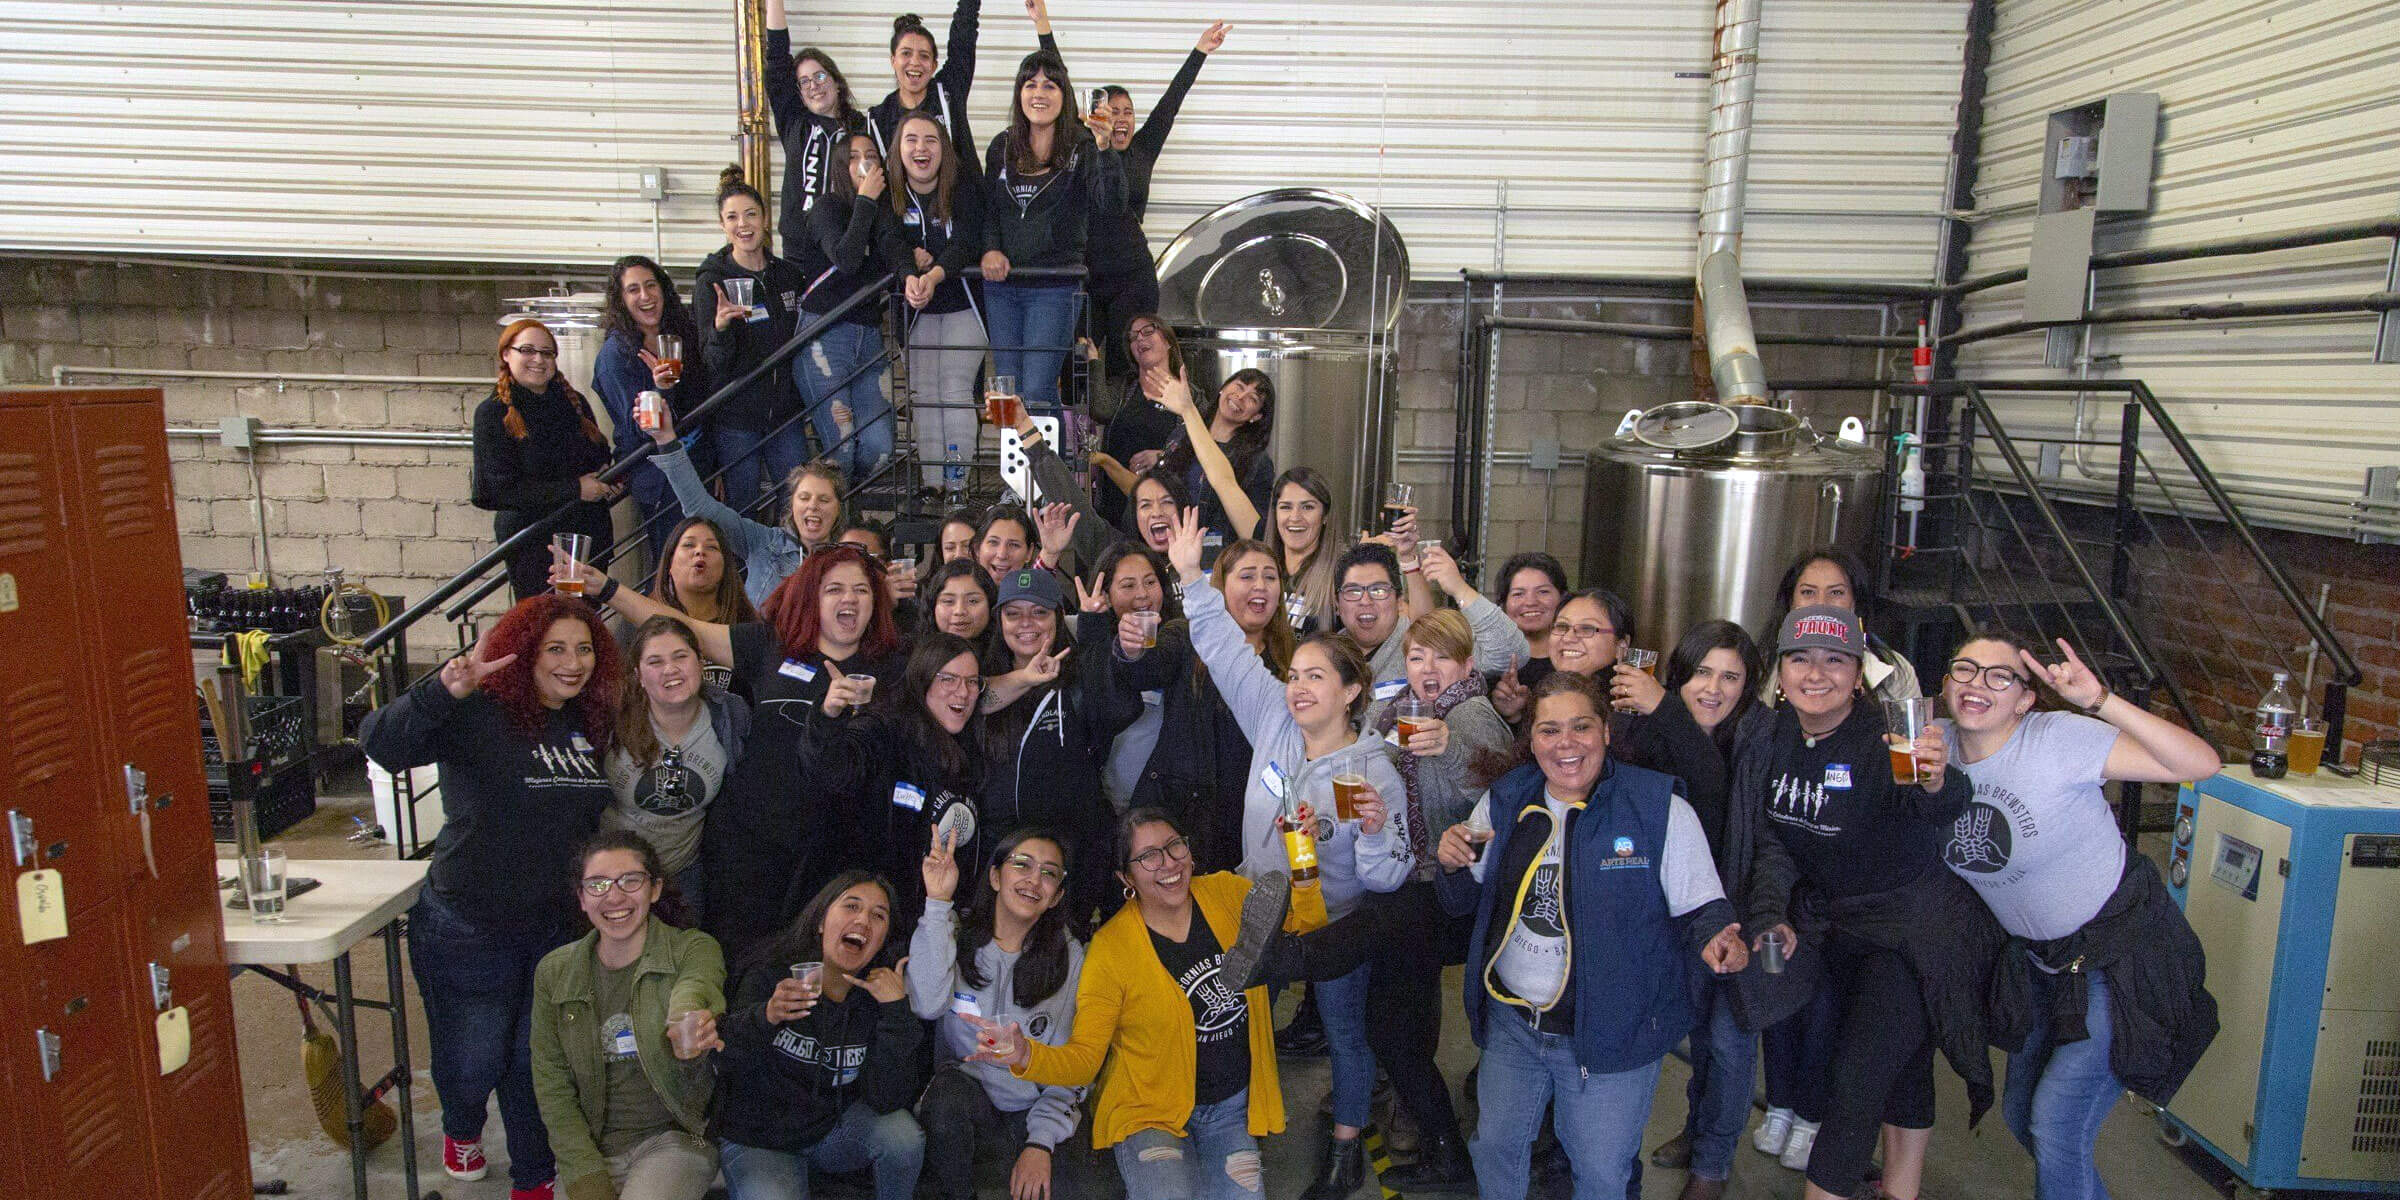 The SouthNorte Beer Co. Dos Californias Brewsters project brought together women from Mexico to brew a Brown Ale that's now available South of the Border.